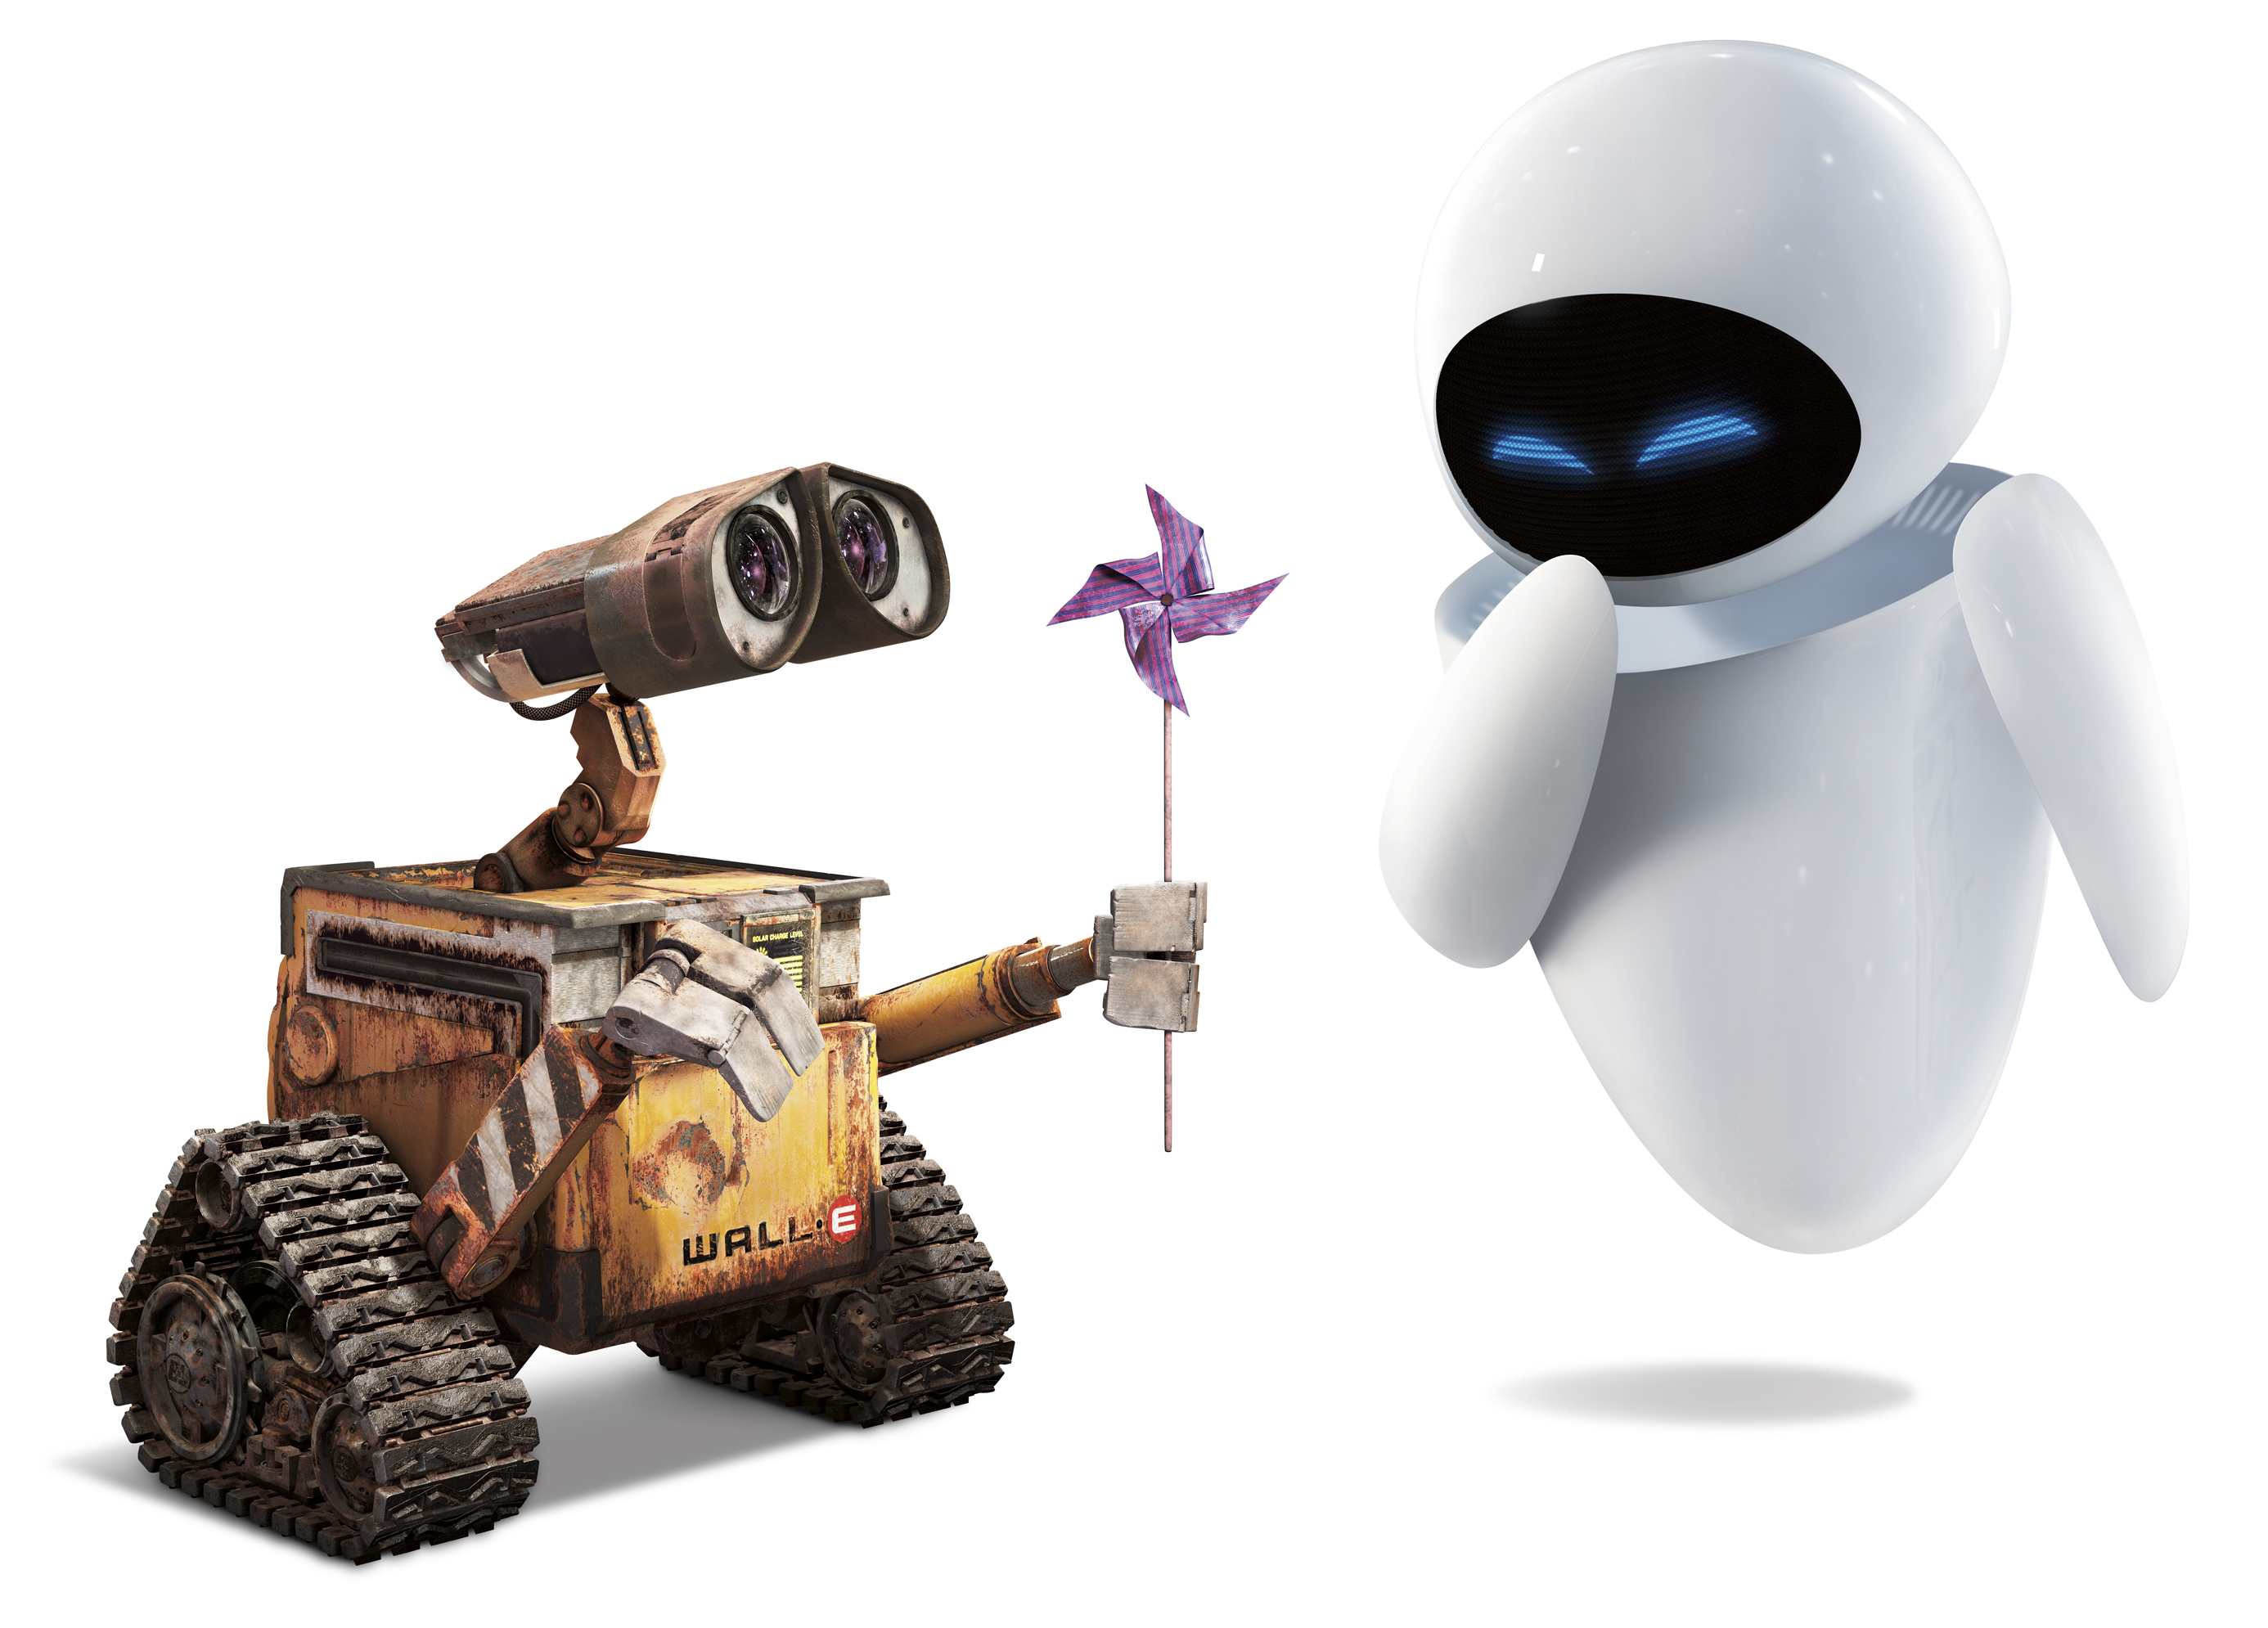 Wall E wallpaper 1